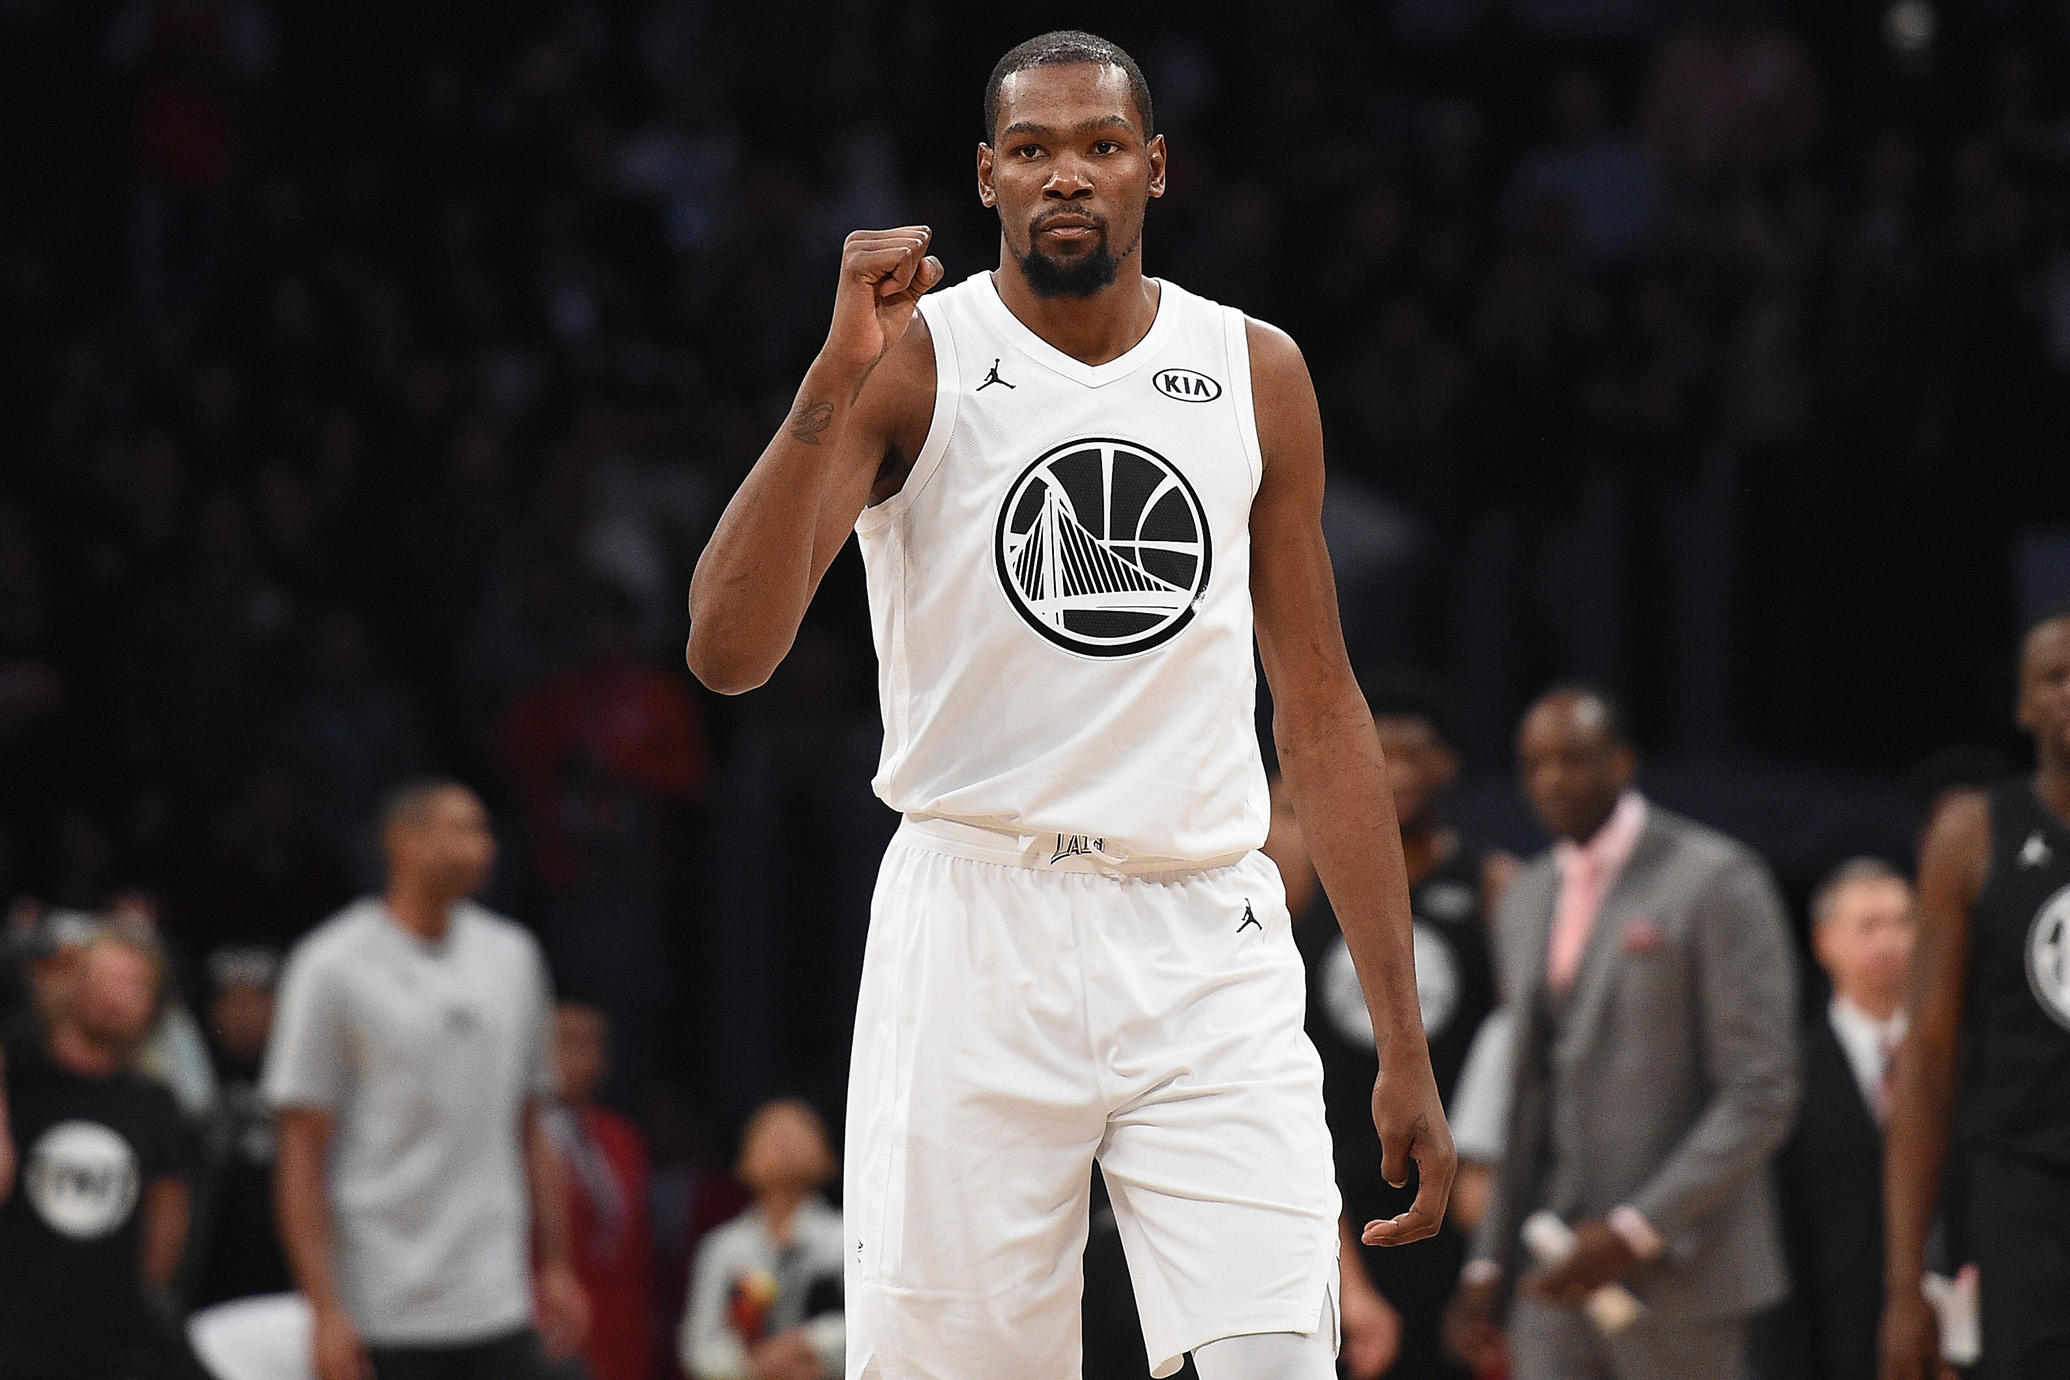 Kevin Durant | Photo Credits: Kevork Djansezian, Getty Images